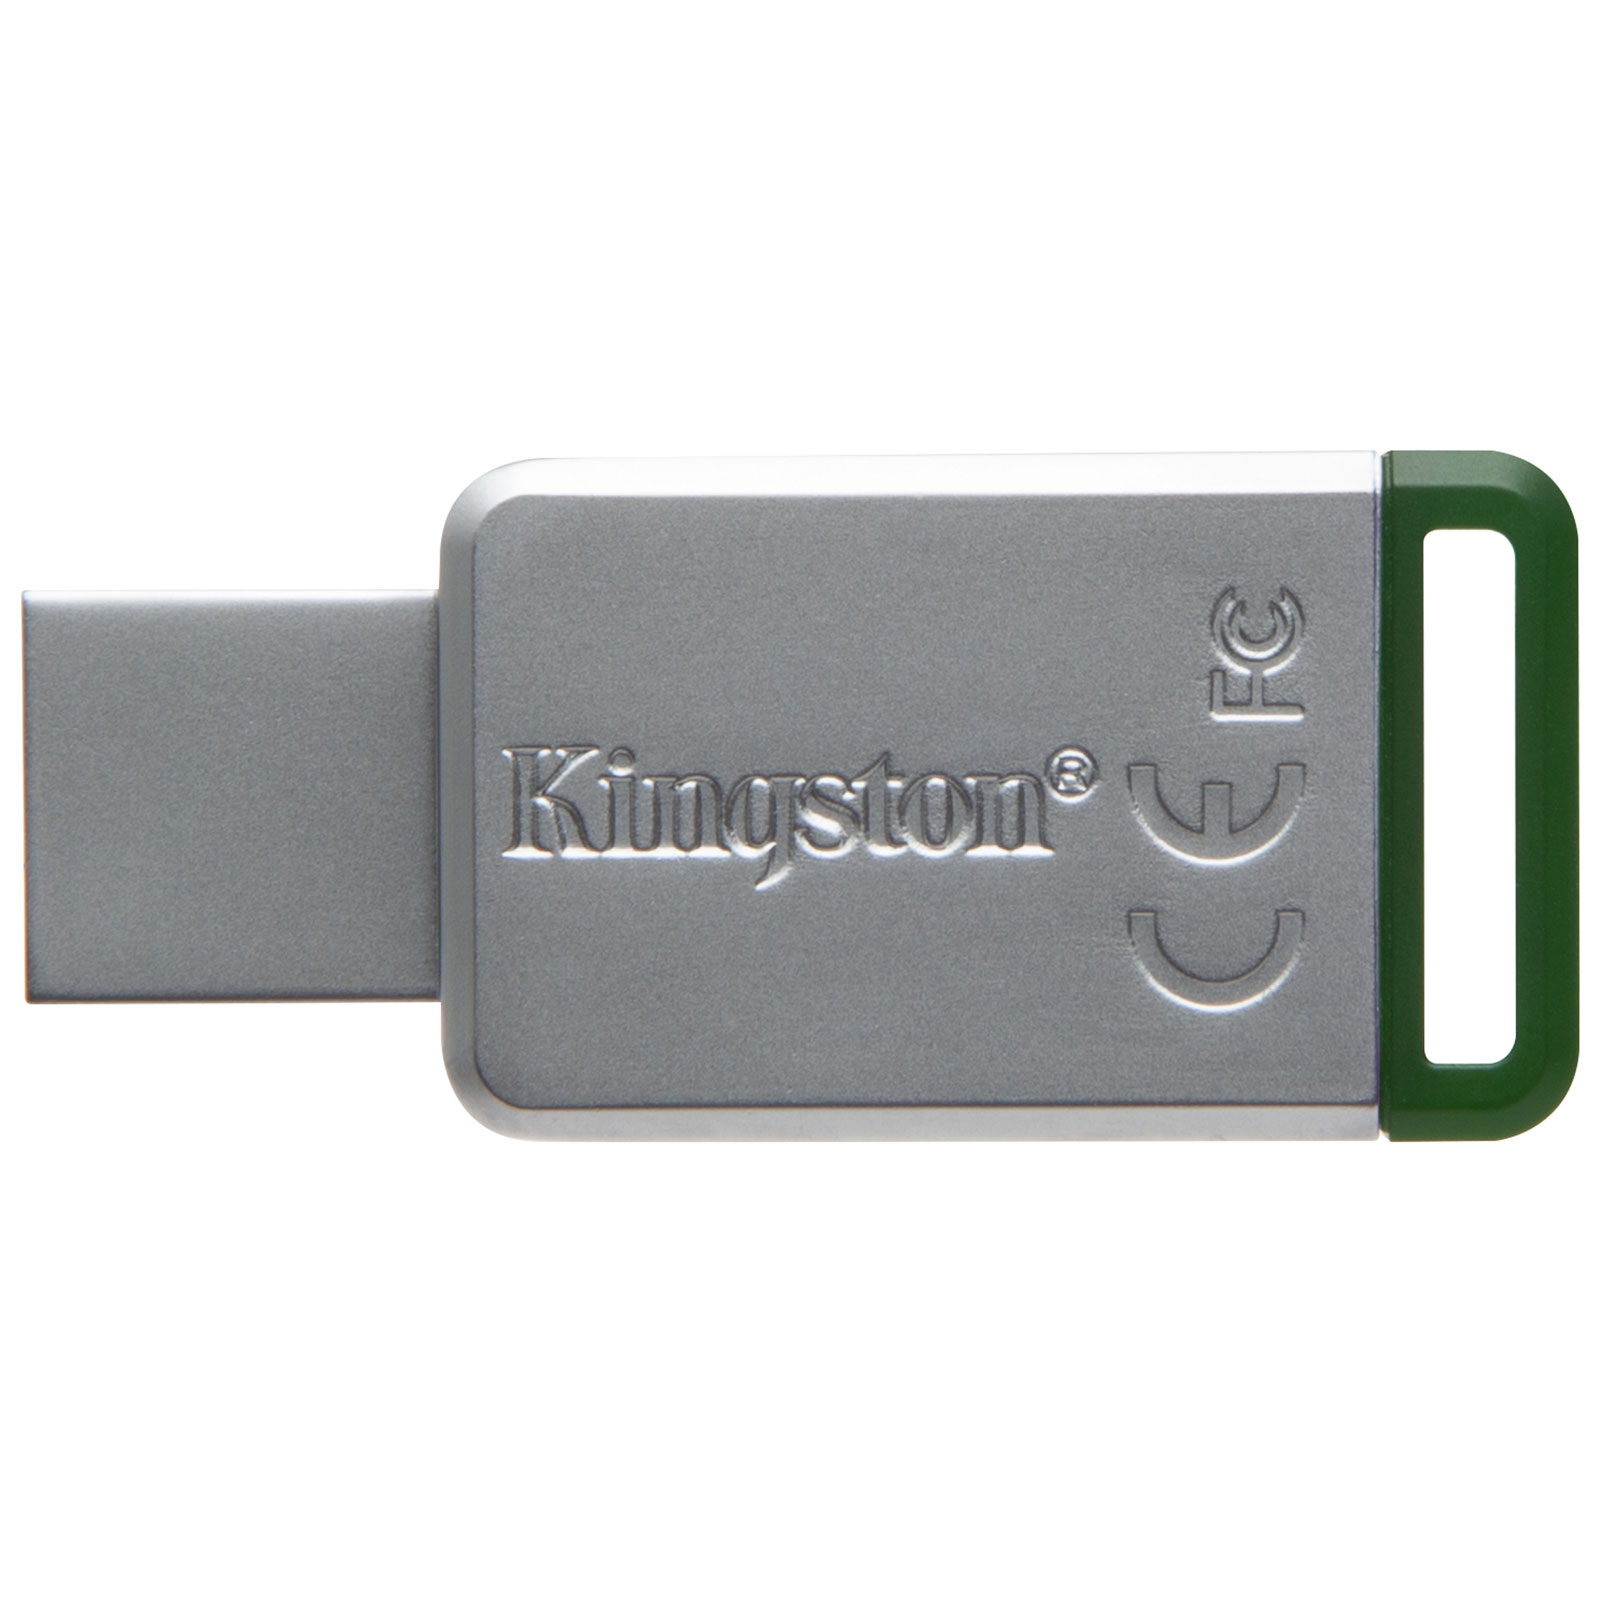 Kingston 16Go USB 3.1 - Clé USB Kingston - Cybertek.fr - 2